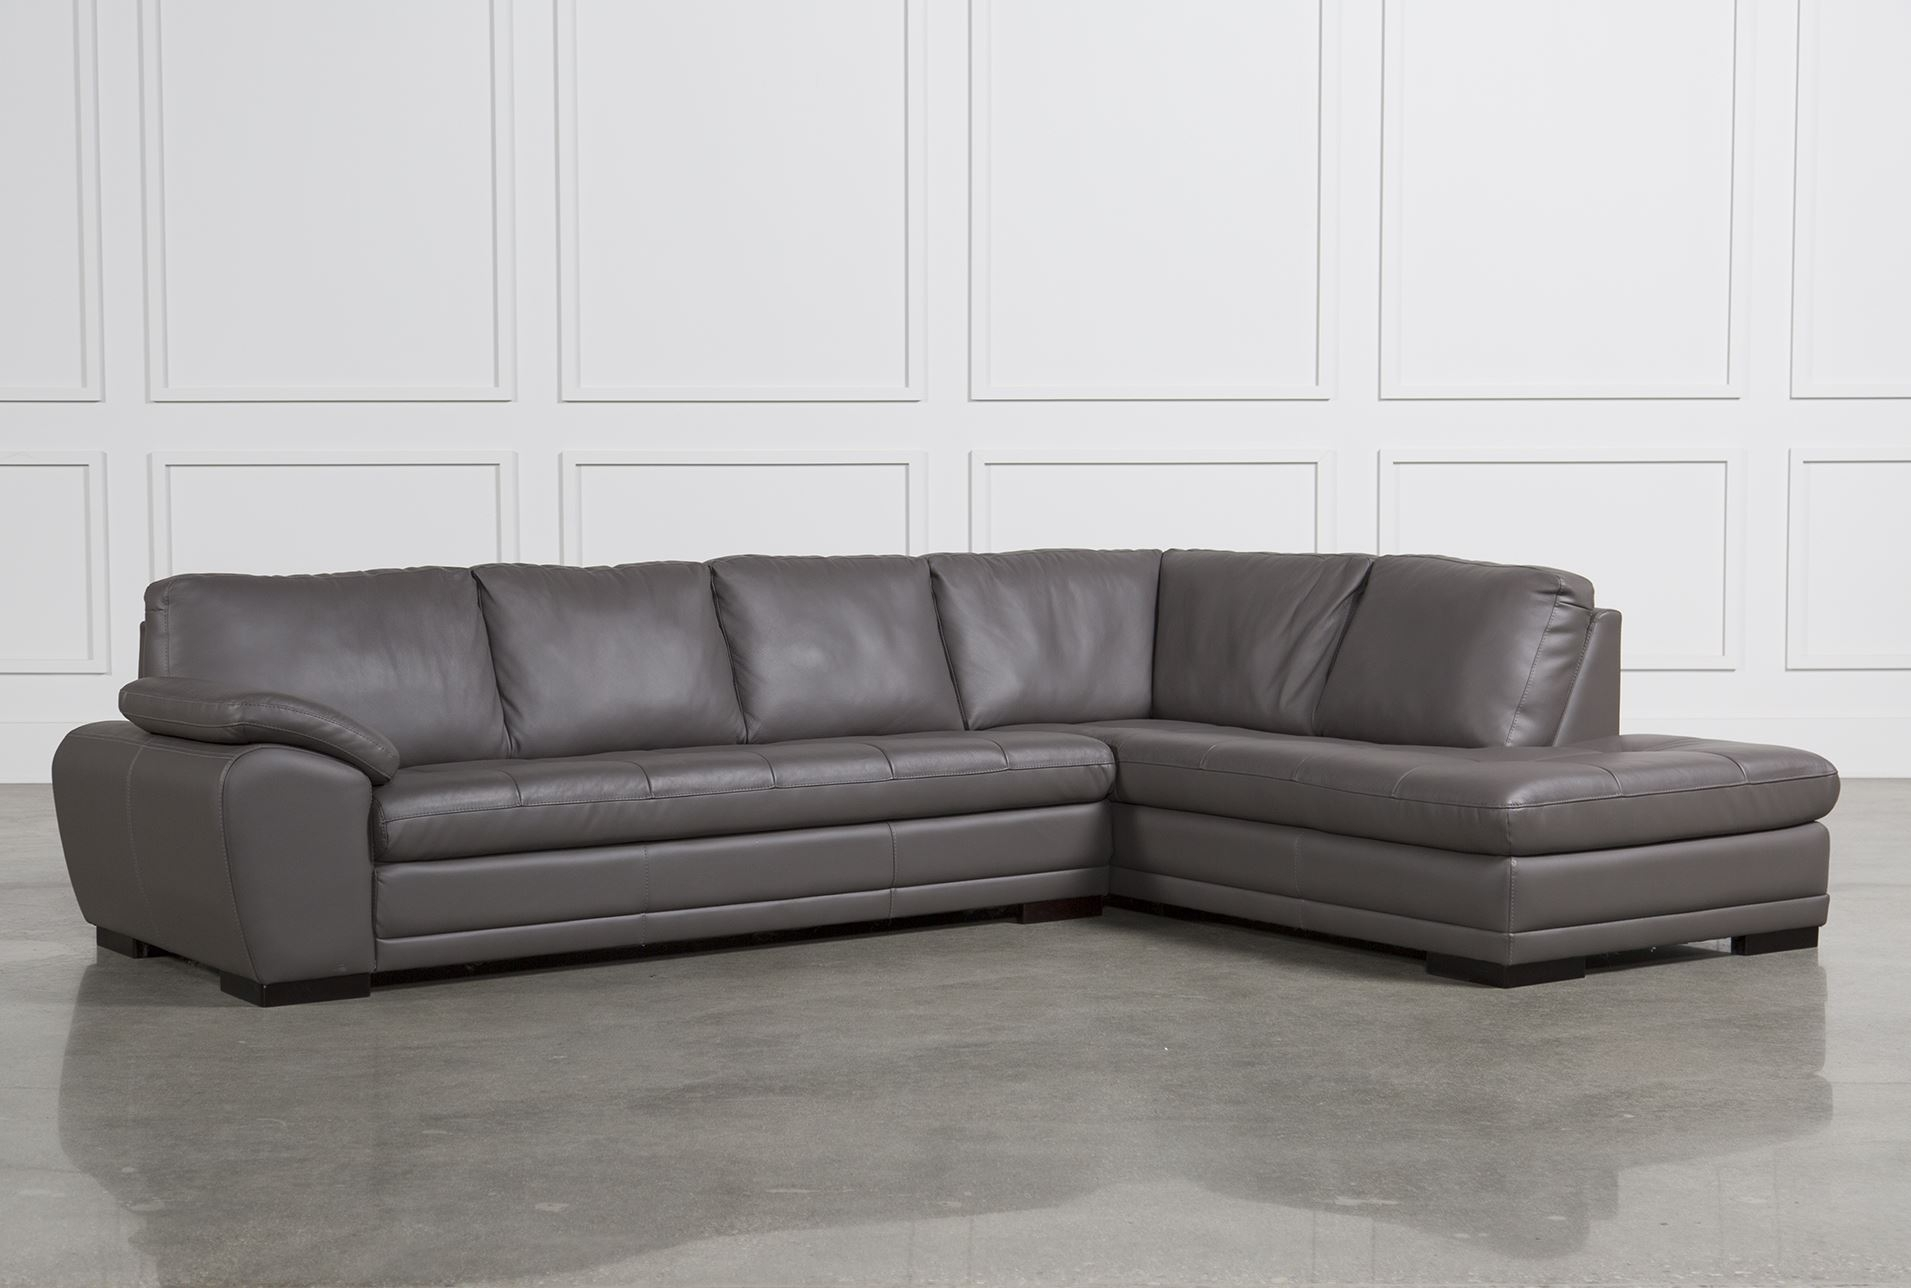 Excellent Leather Sectional Sofas For Vaughn Granite 2 Piece Throughout Living Spaces Sectional Sofas (View 3 of 10)